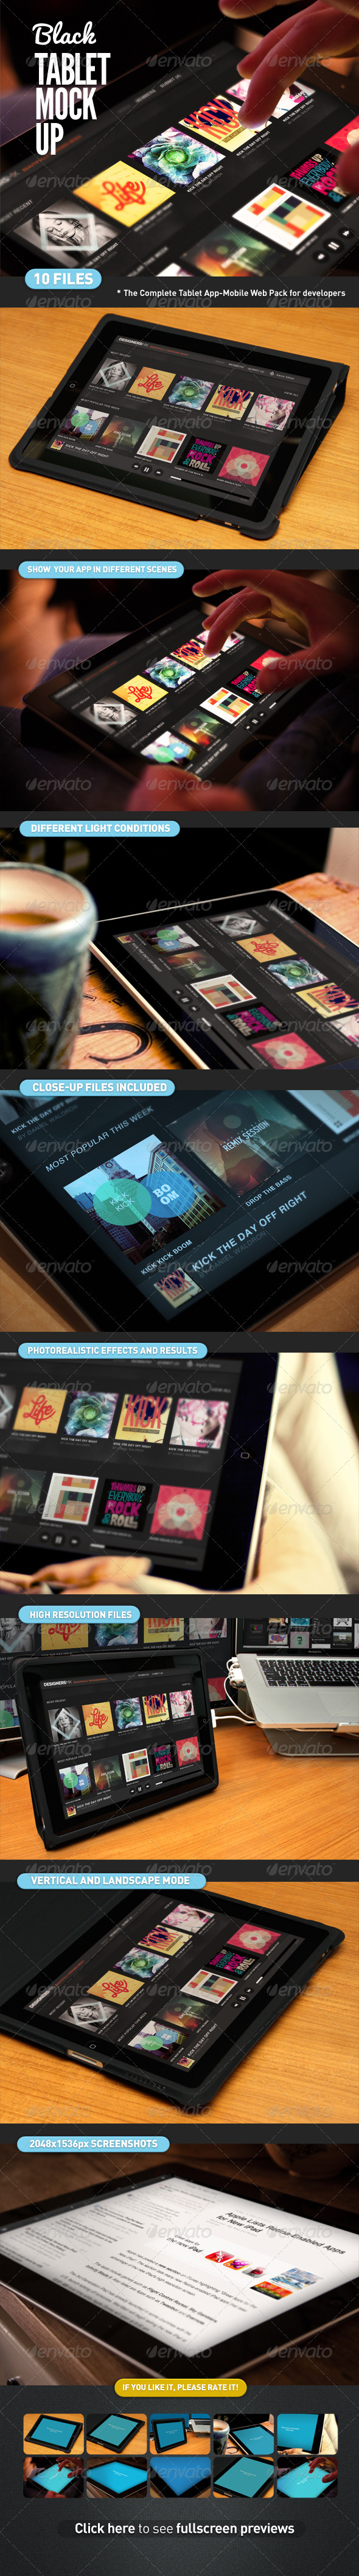 GraphicRiver Black Pad Tablet App UI Mock-Up 3374437